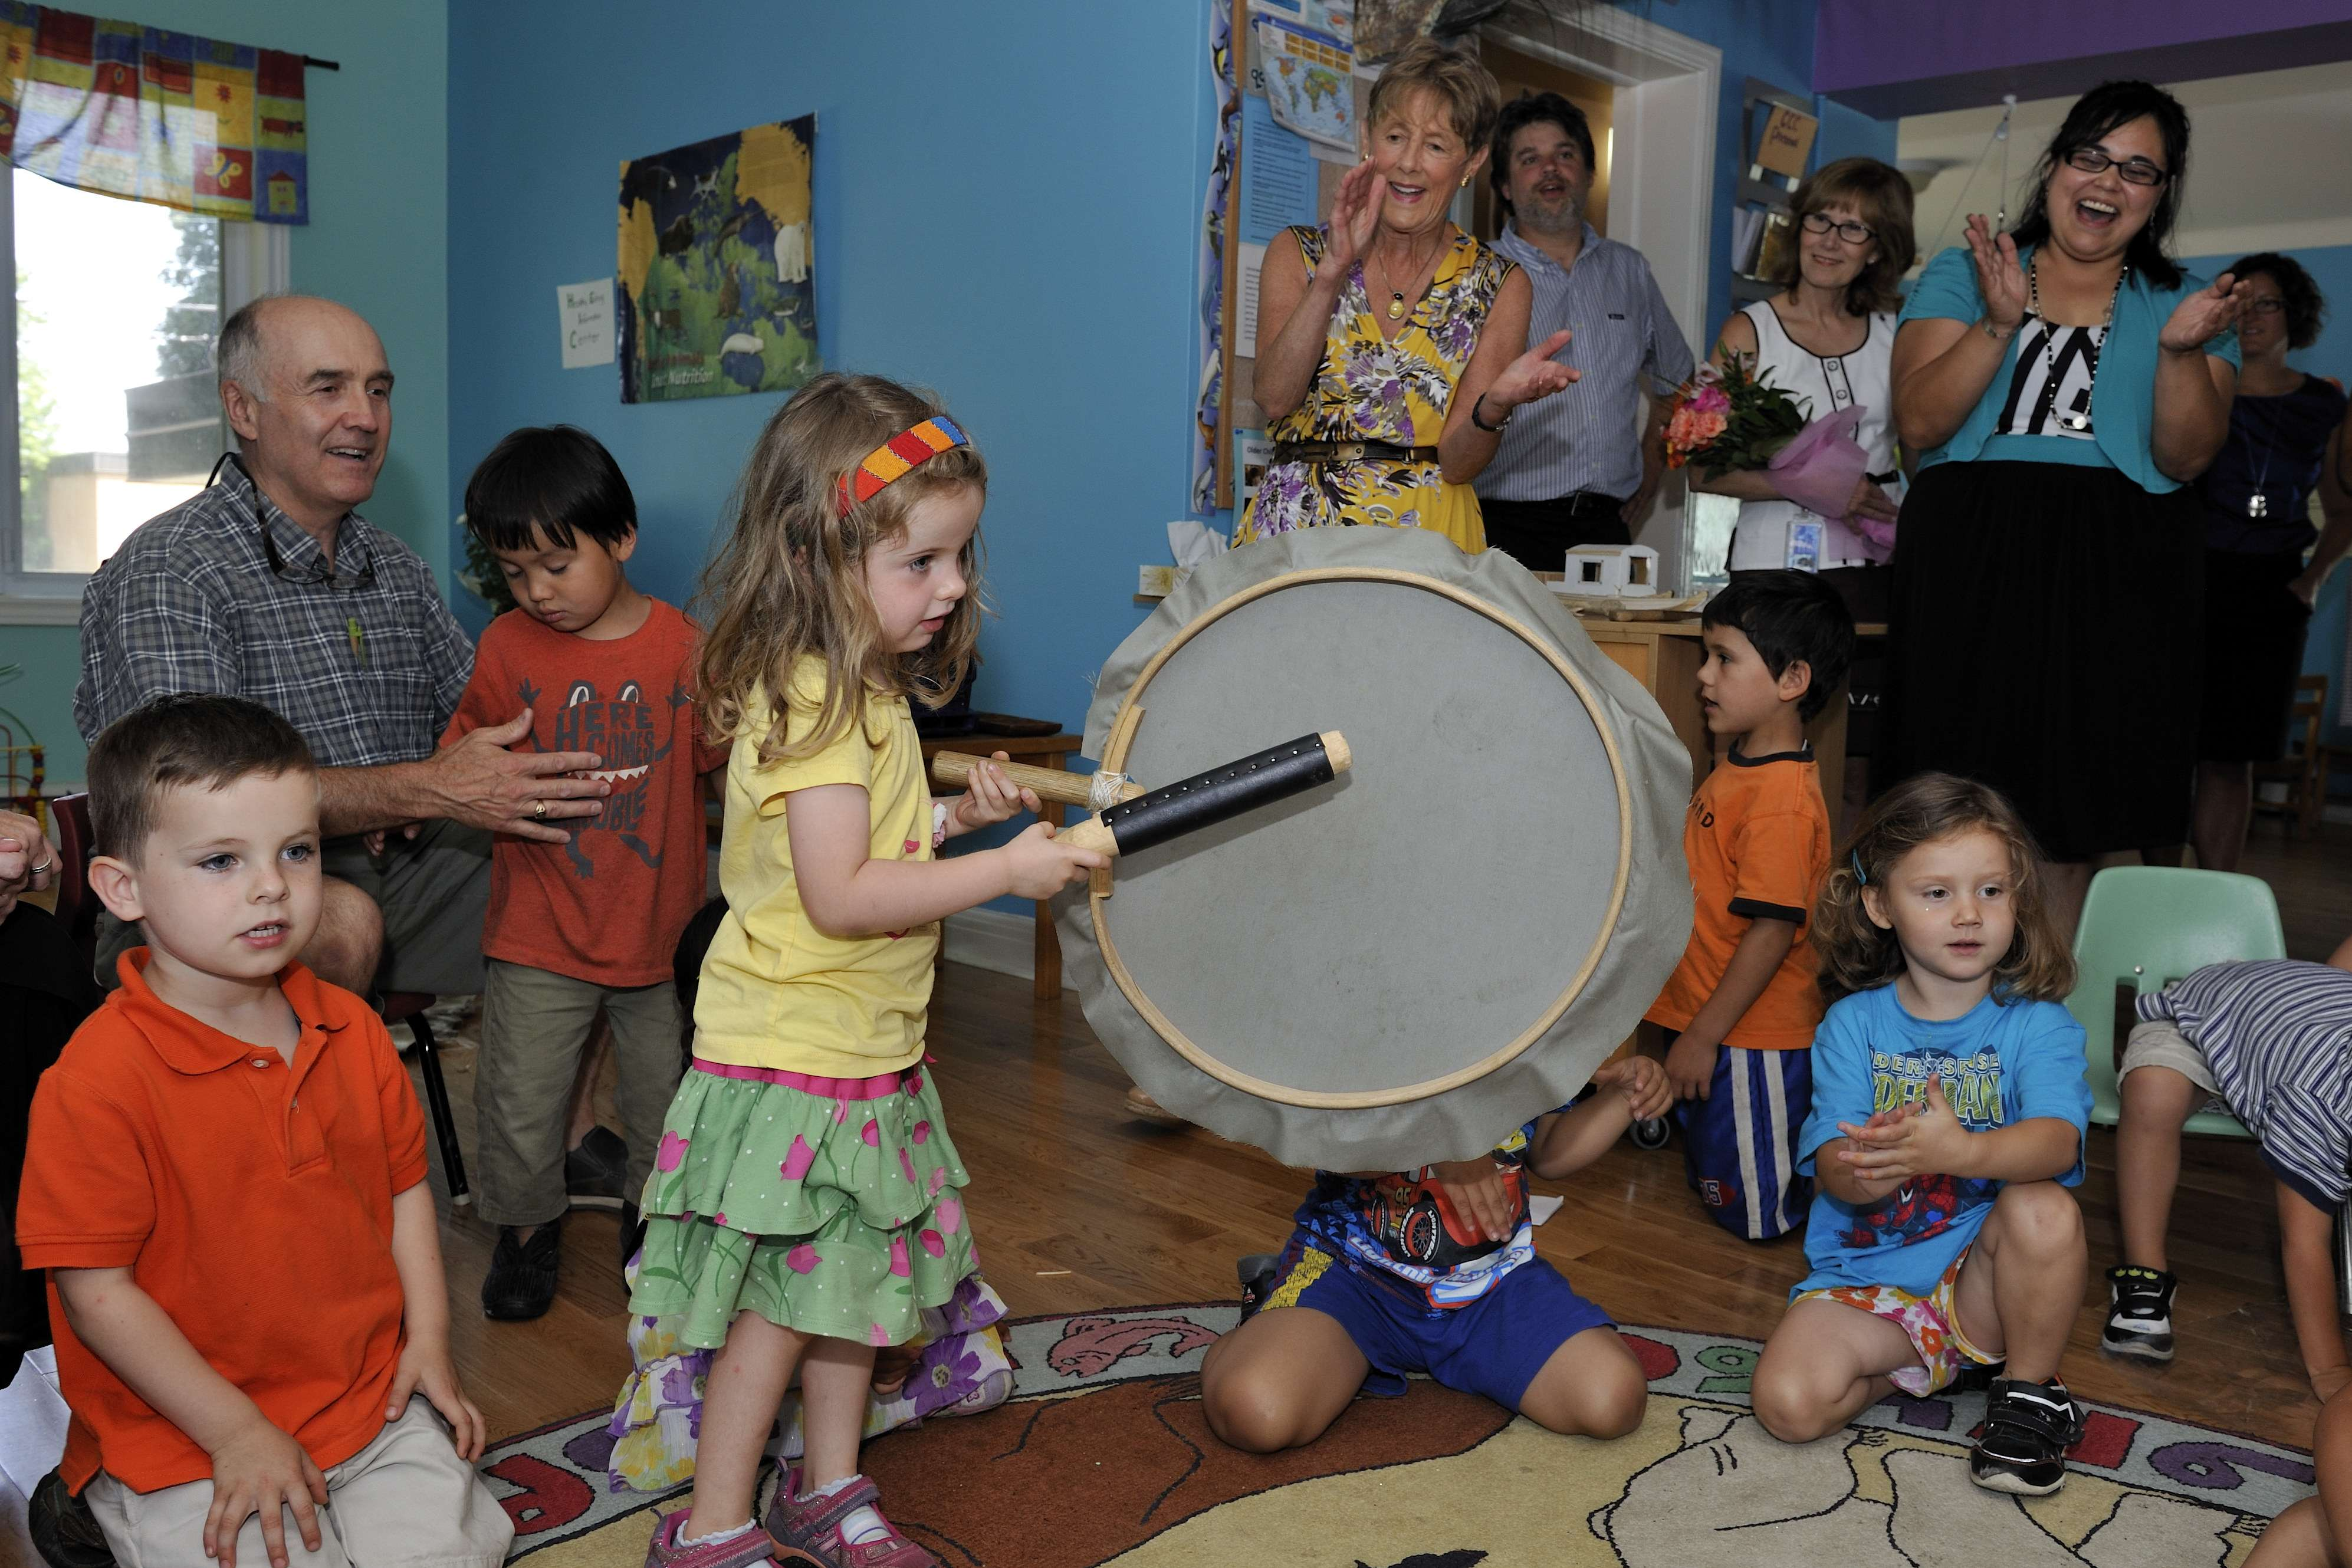 Ms. Johnston visited the centre with two of her grandchildren who both enjoyed drumming.